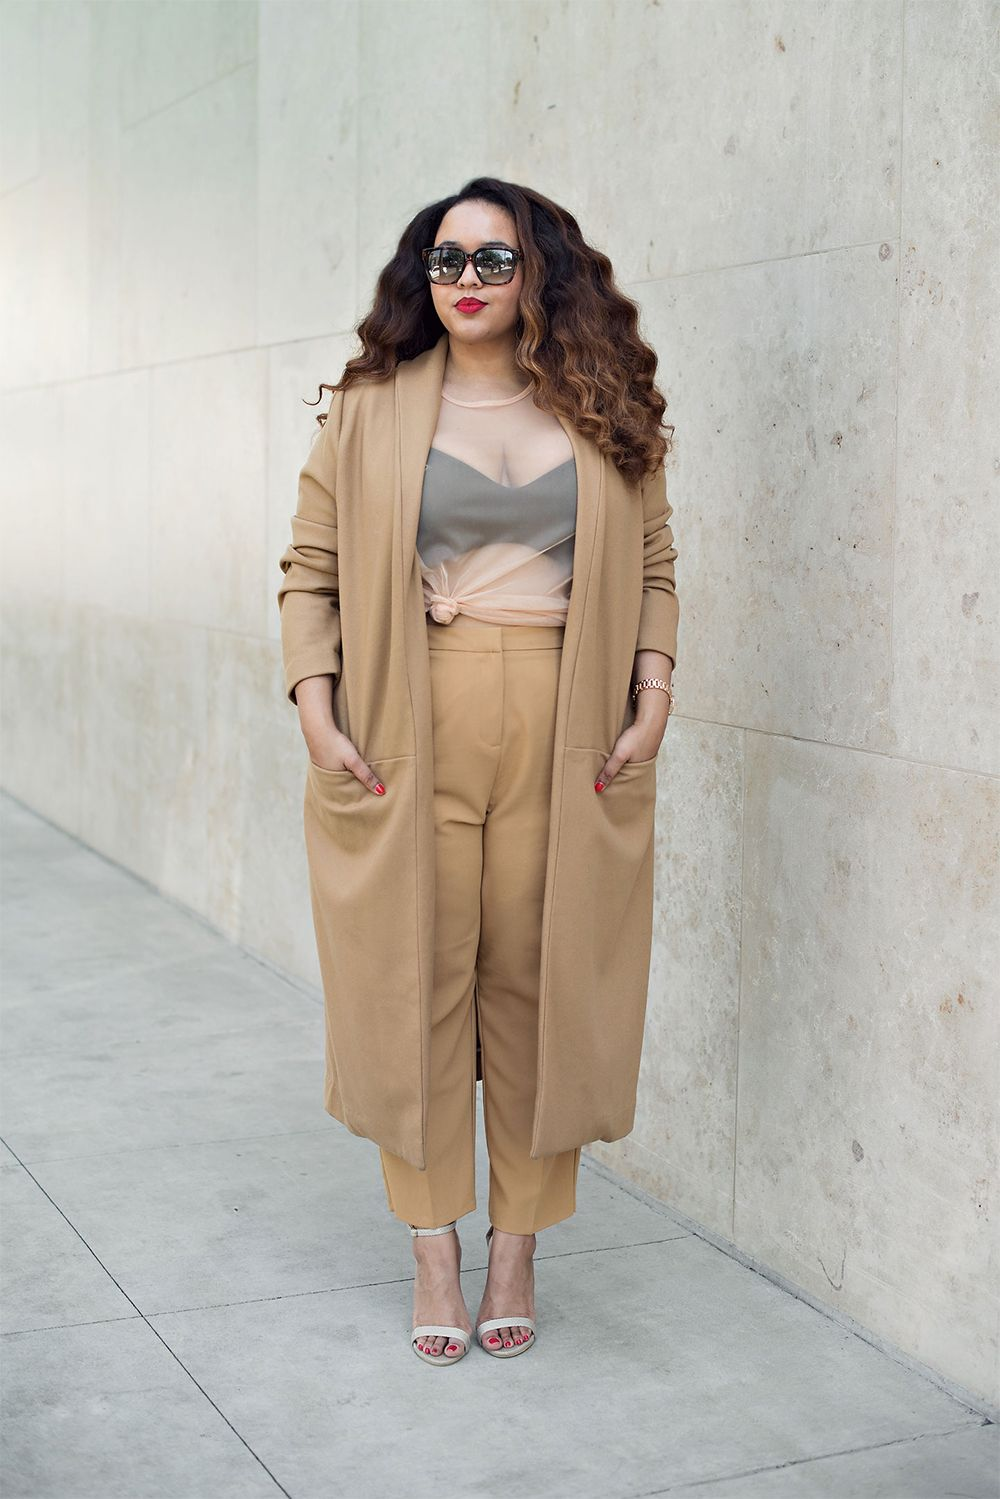 These Plus-Size Fashion Bloggers Are Revolutionizing the Style Game